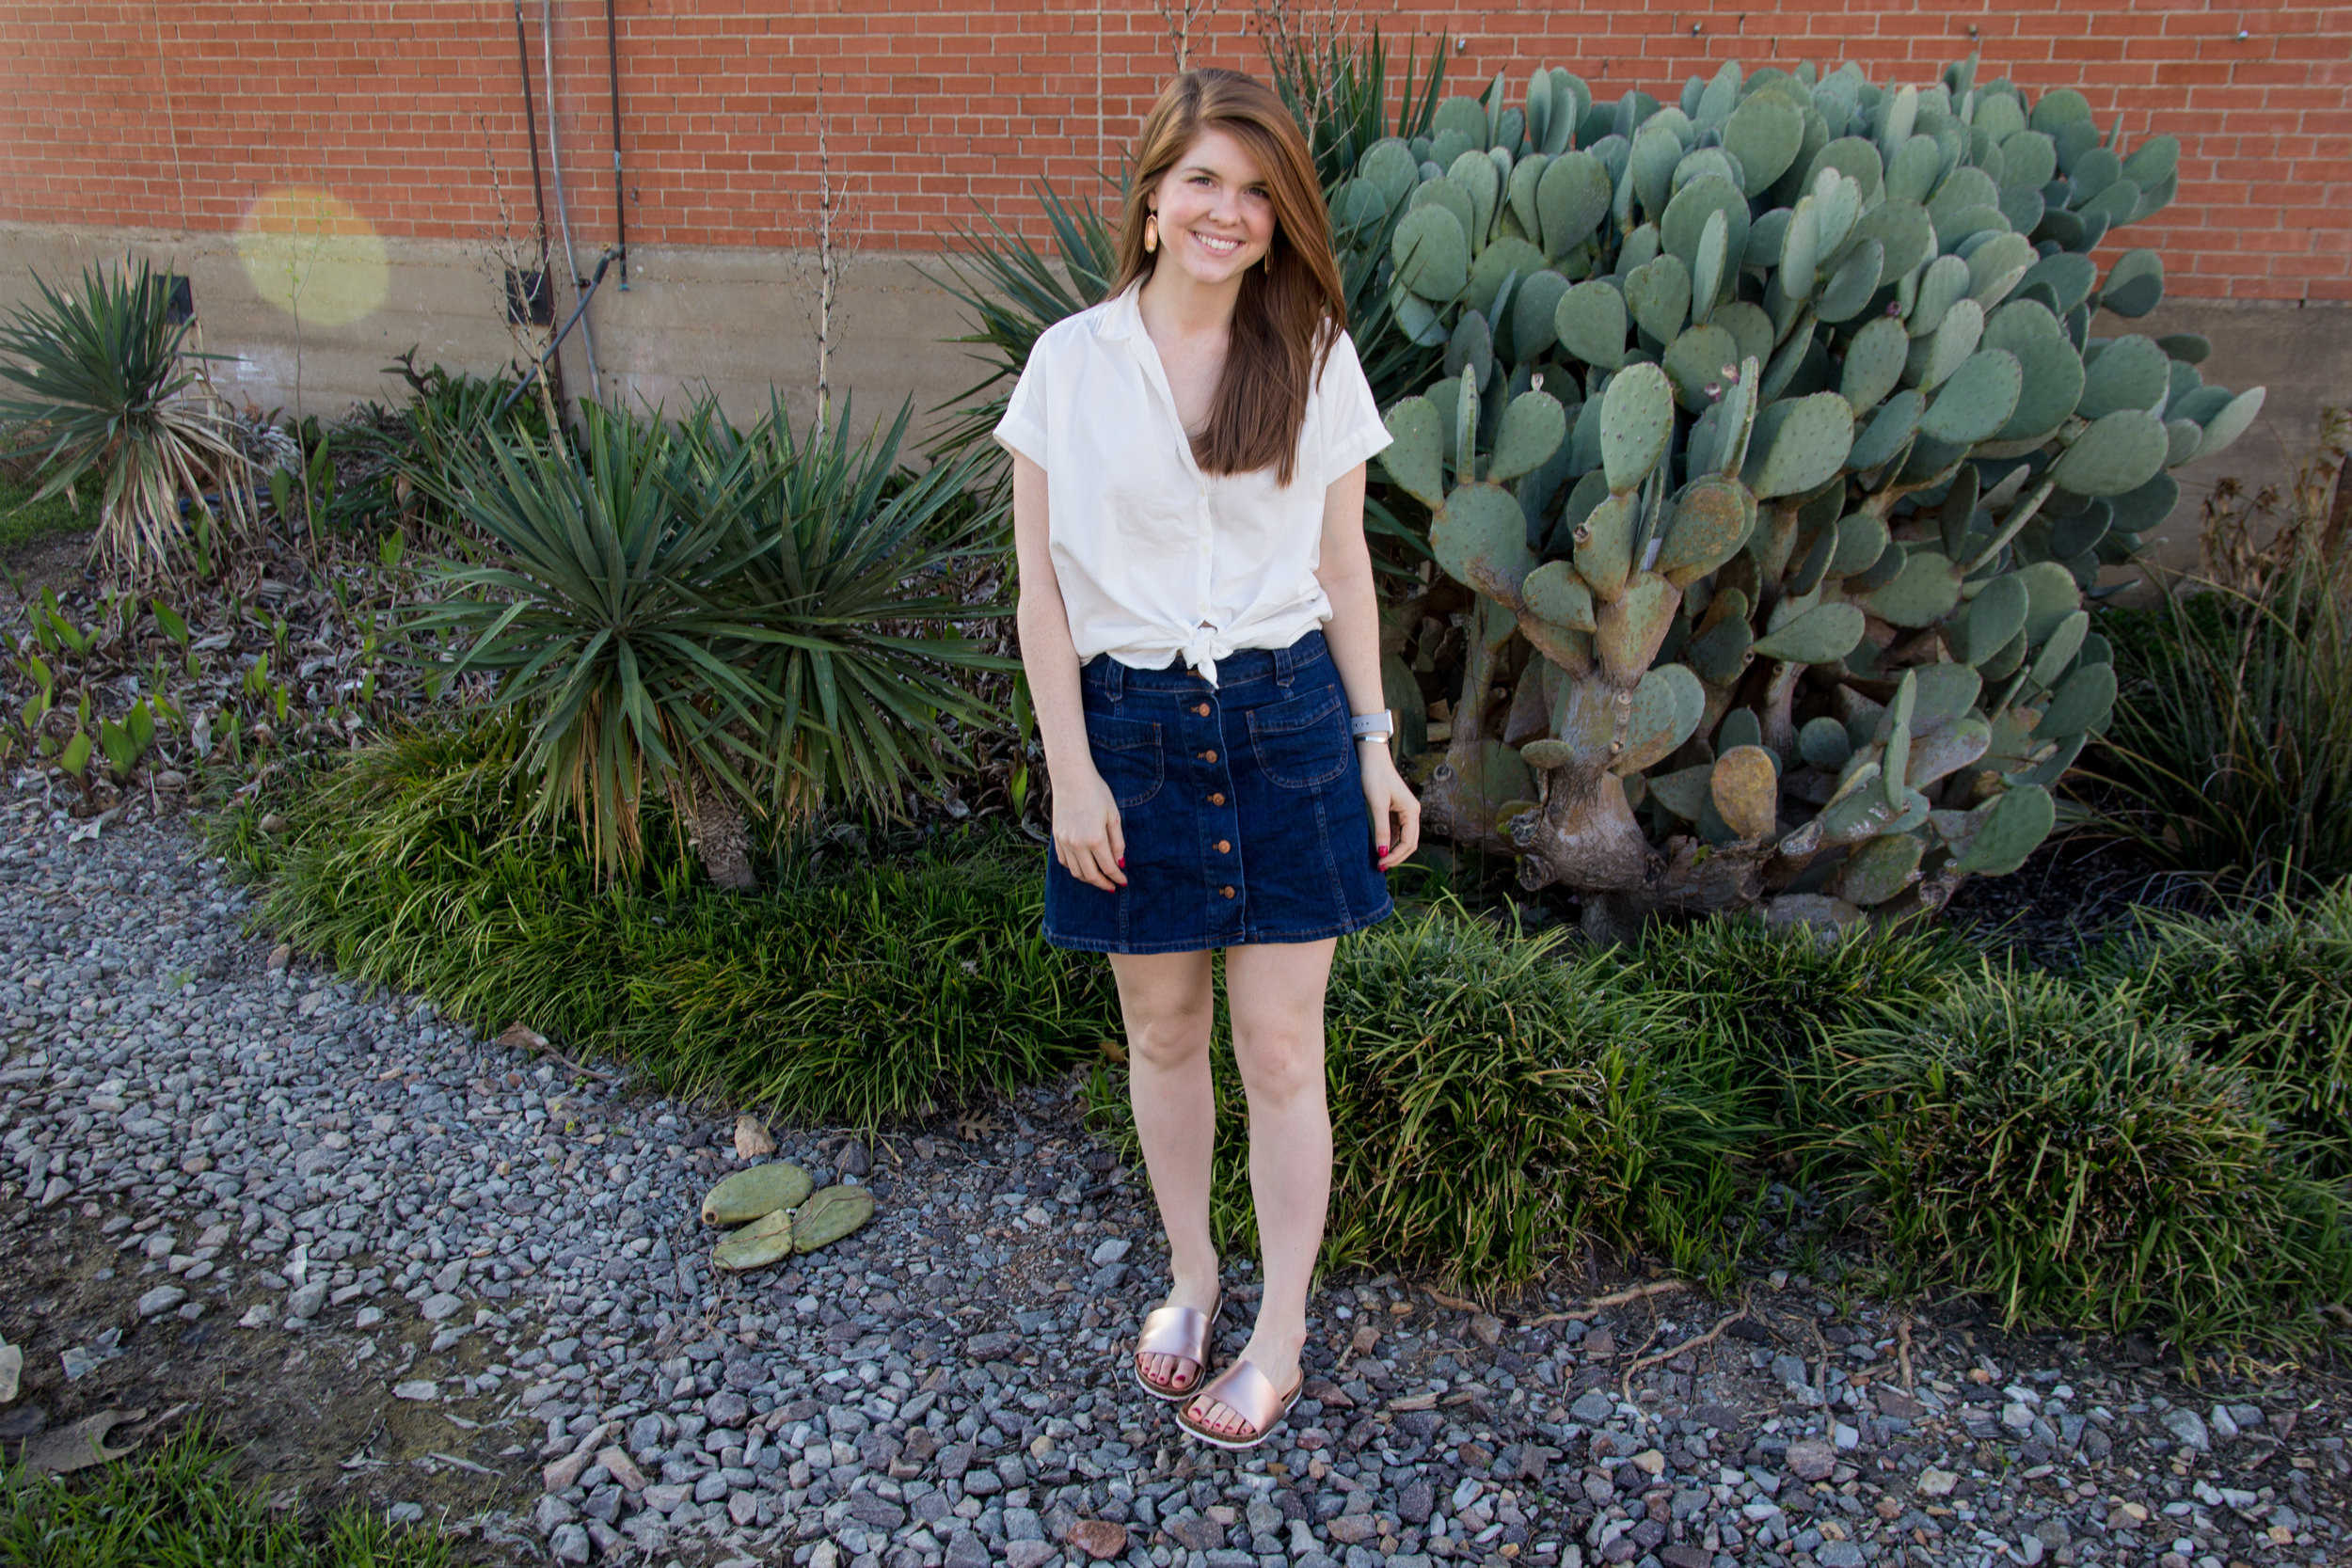 madewell central shirt in white, madewell denim skirt, american eagle rose gold slides, now trending slides sandals, shoe trends